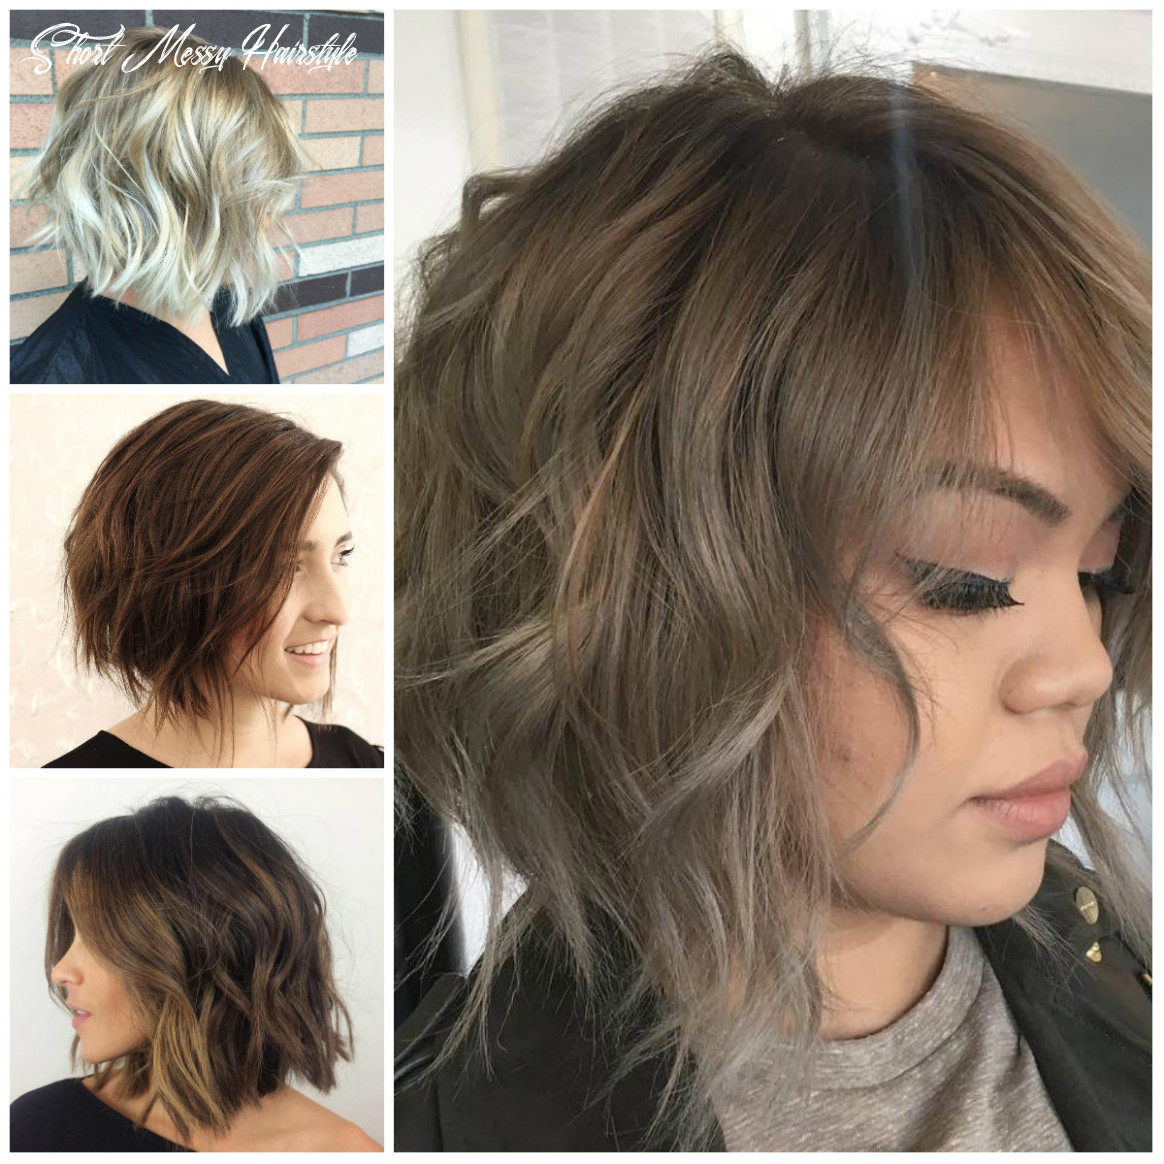 Casual short messy hairstyles for females | 12 haircuts